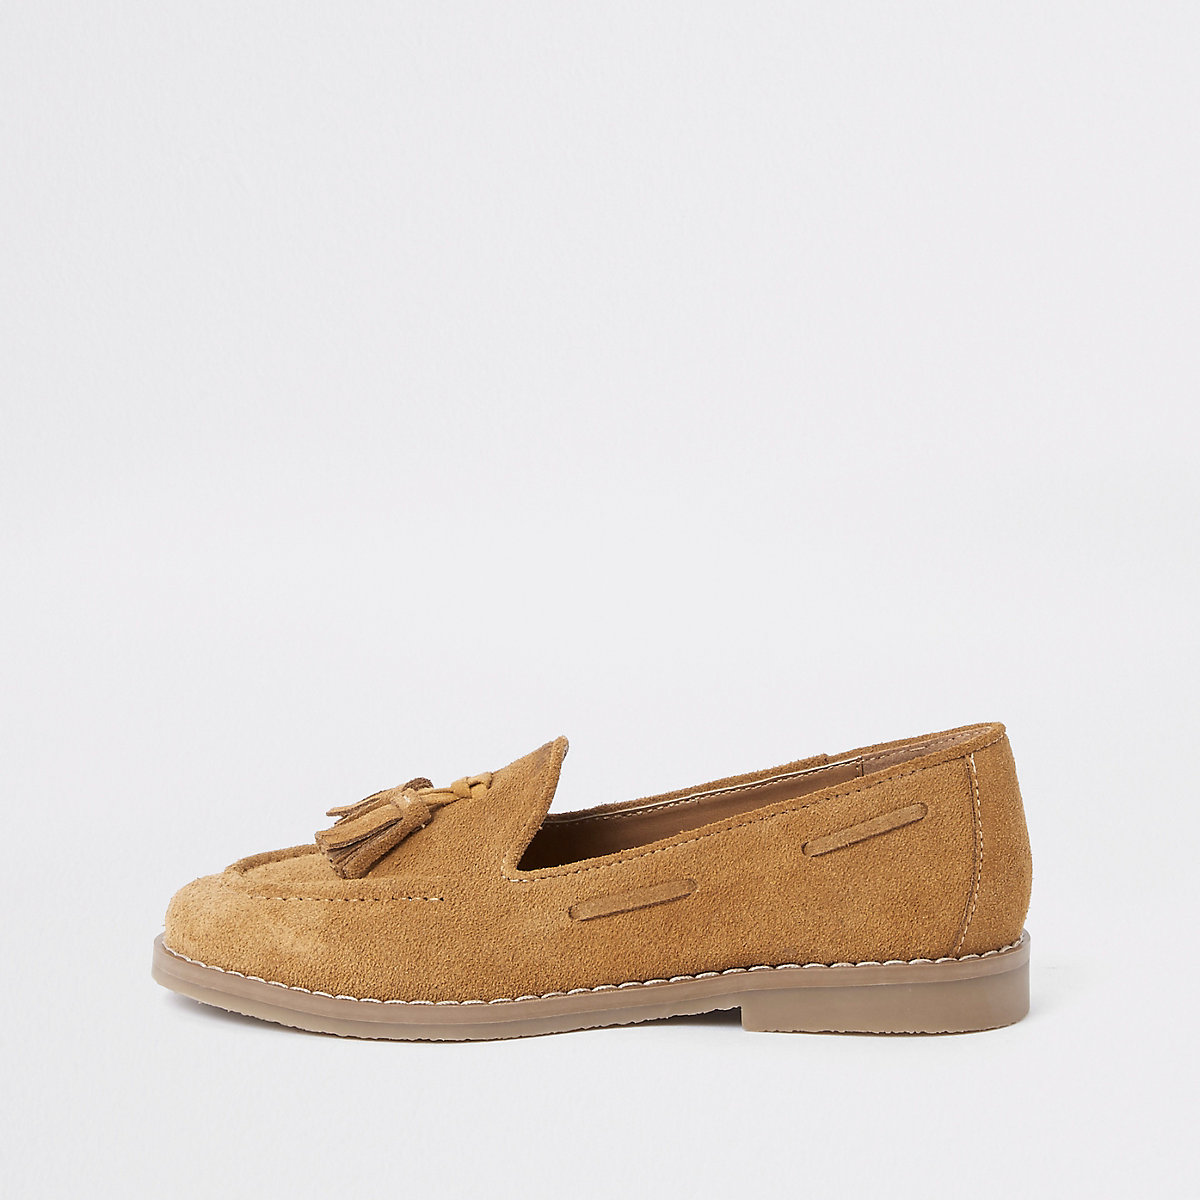 Boys light brown tassel loafers